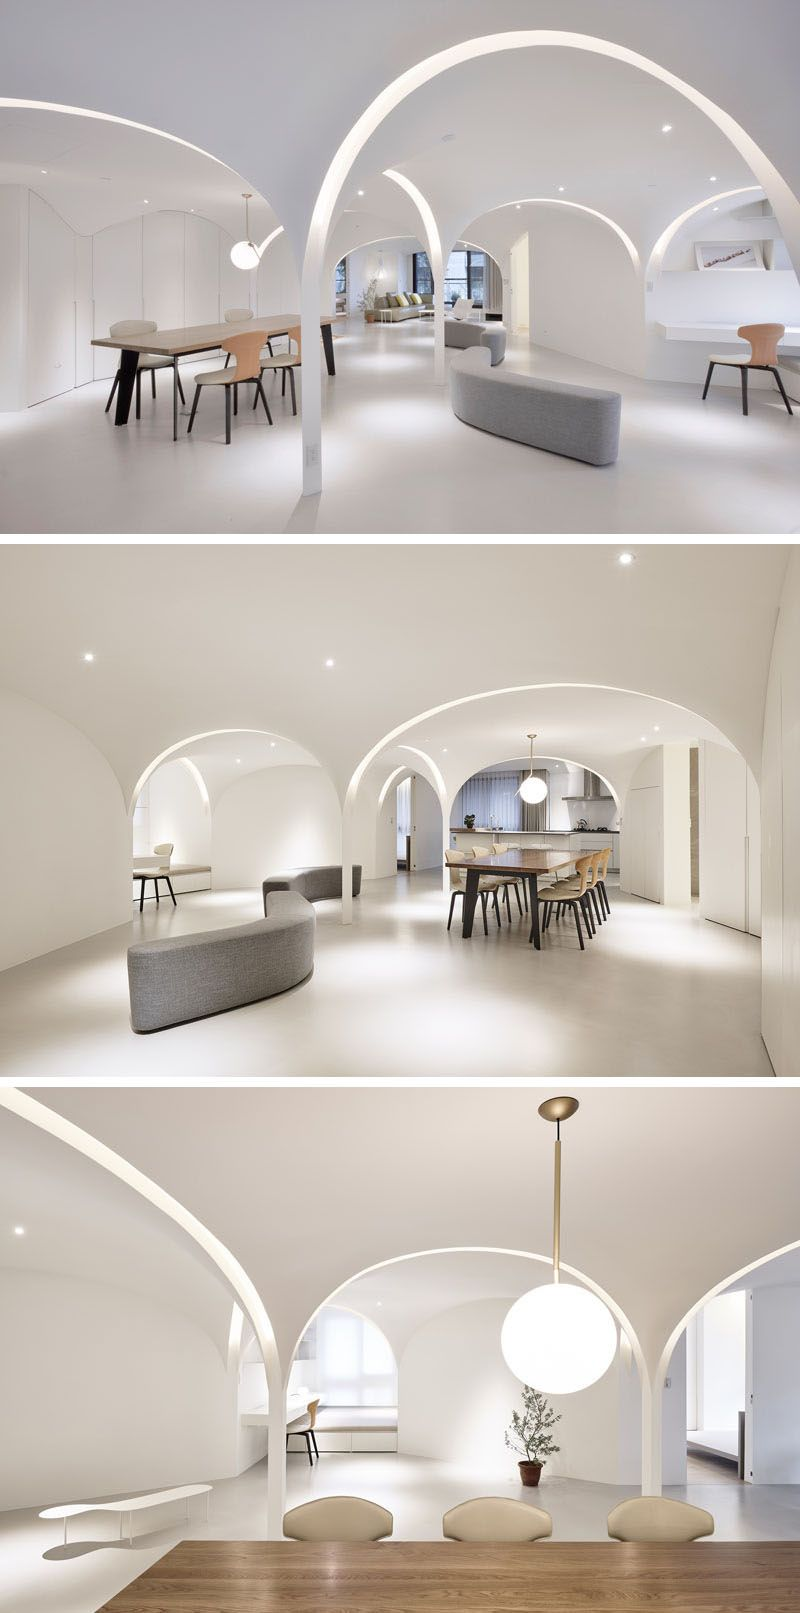 Very Studio | Che Wang Architects have designed the interior of a modern white apartment that features arches that have curved lighting that runs within them. #InteriorDesign #Lighting #Archway